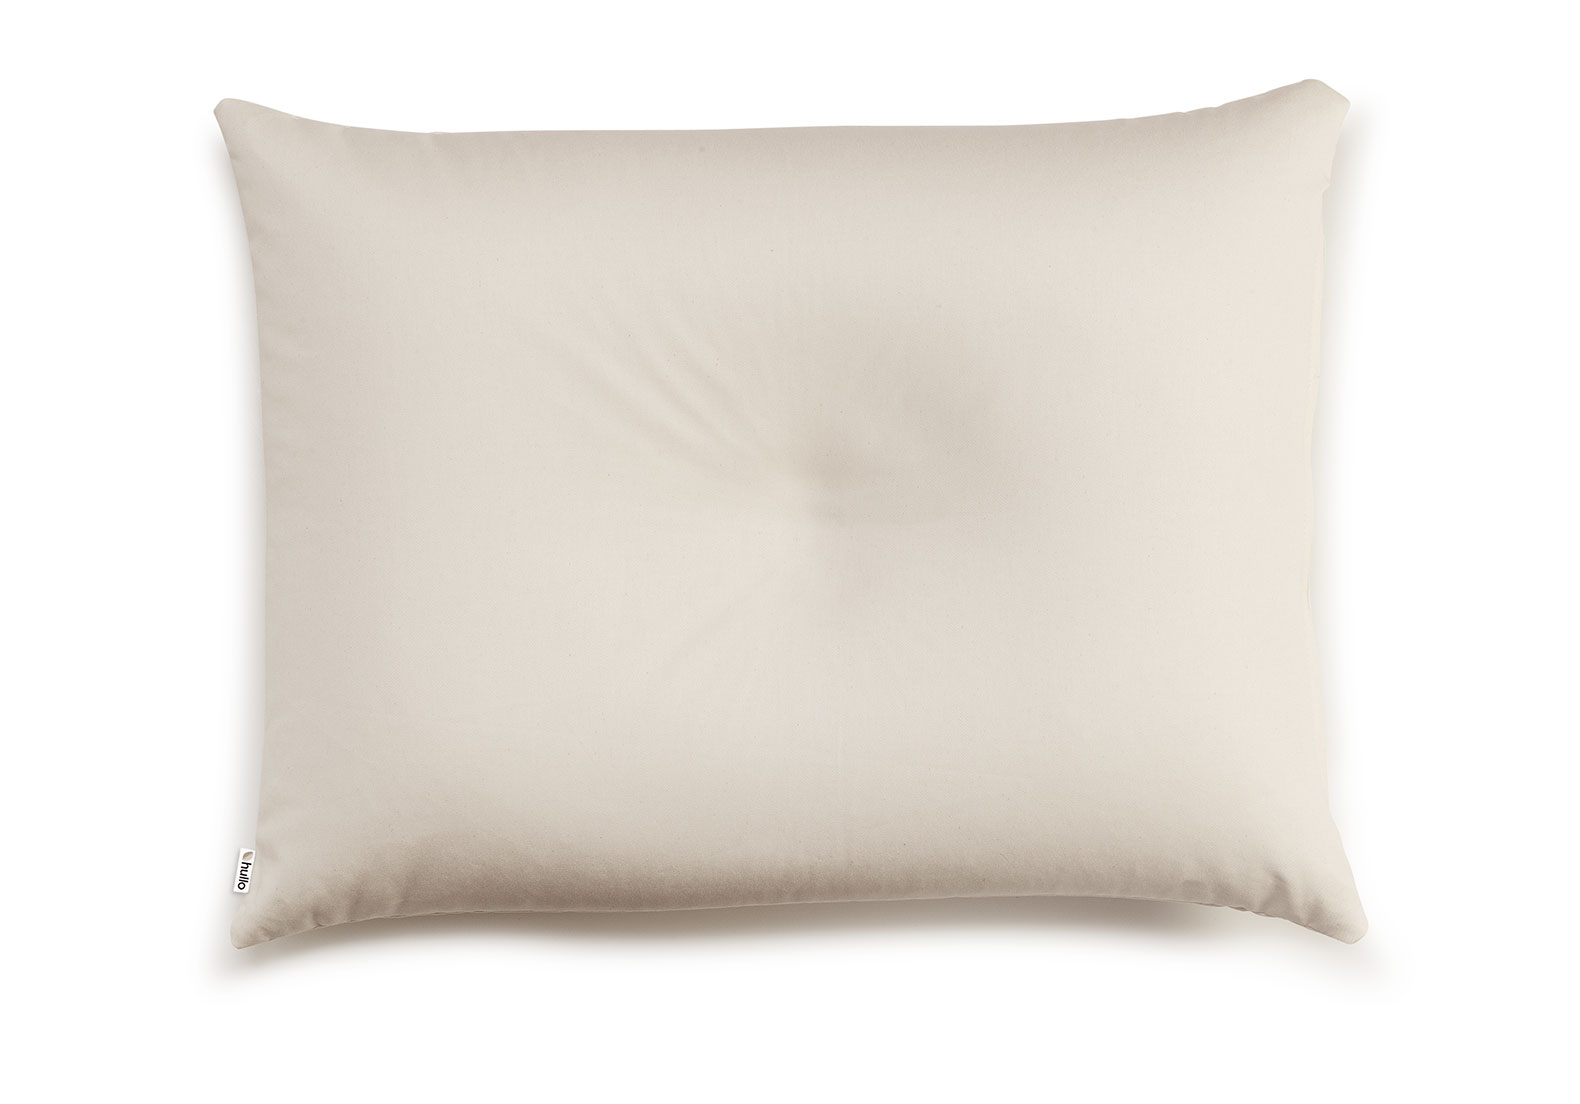 buckwheat pillows offer a good night s sleep without hurting the environment